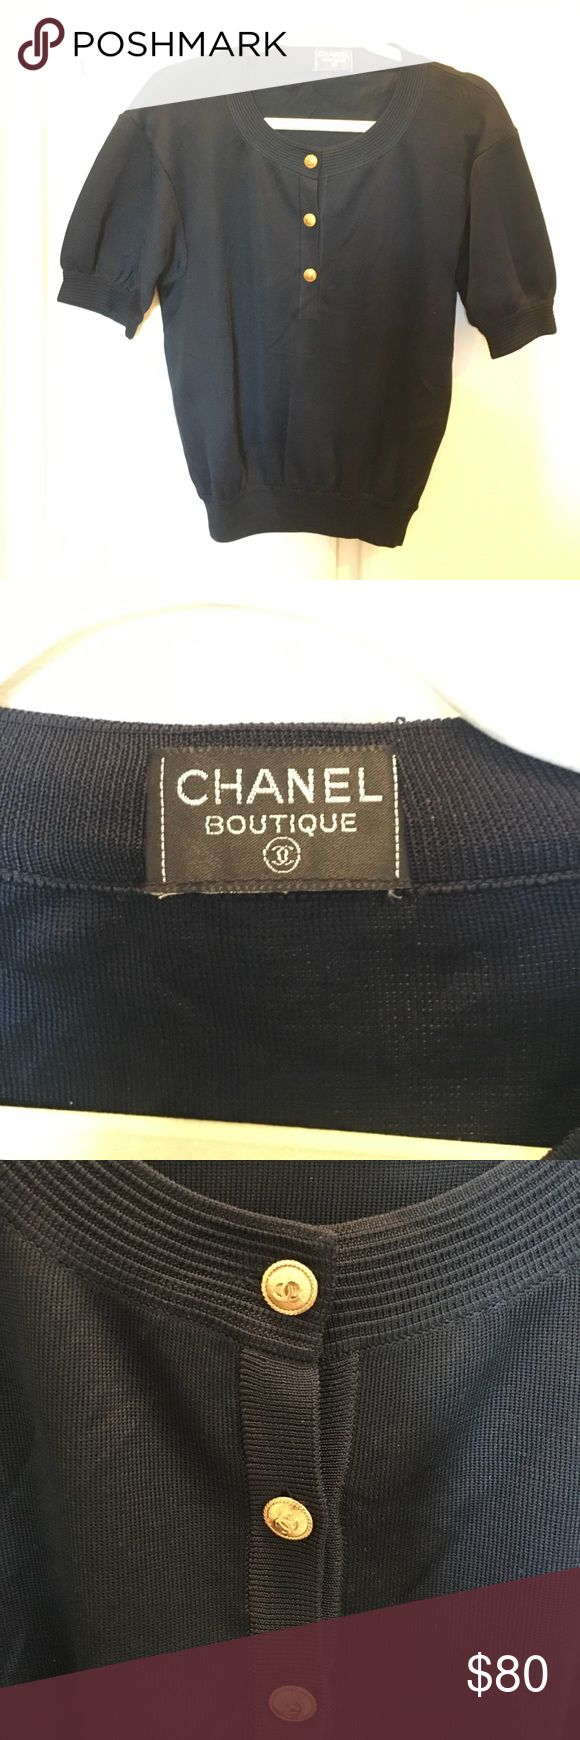 Vintage Chanel Sweater top 80s vintage Chanel sweater top. Great condition, no flaws. Looks new, I have never worn but was handed down to me from a relative. No care label so I cannot tell you the content... it is navy in color. An extra button is attached inside on the side seam.  It is size 38 but if you like looser casual fit it can fit size 2 or 4. If for tighter fit it is more like size 6 or 8. CHANEL Sweaters Crew & Scoop Necks